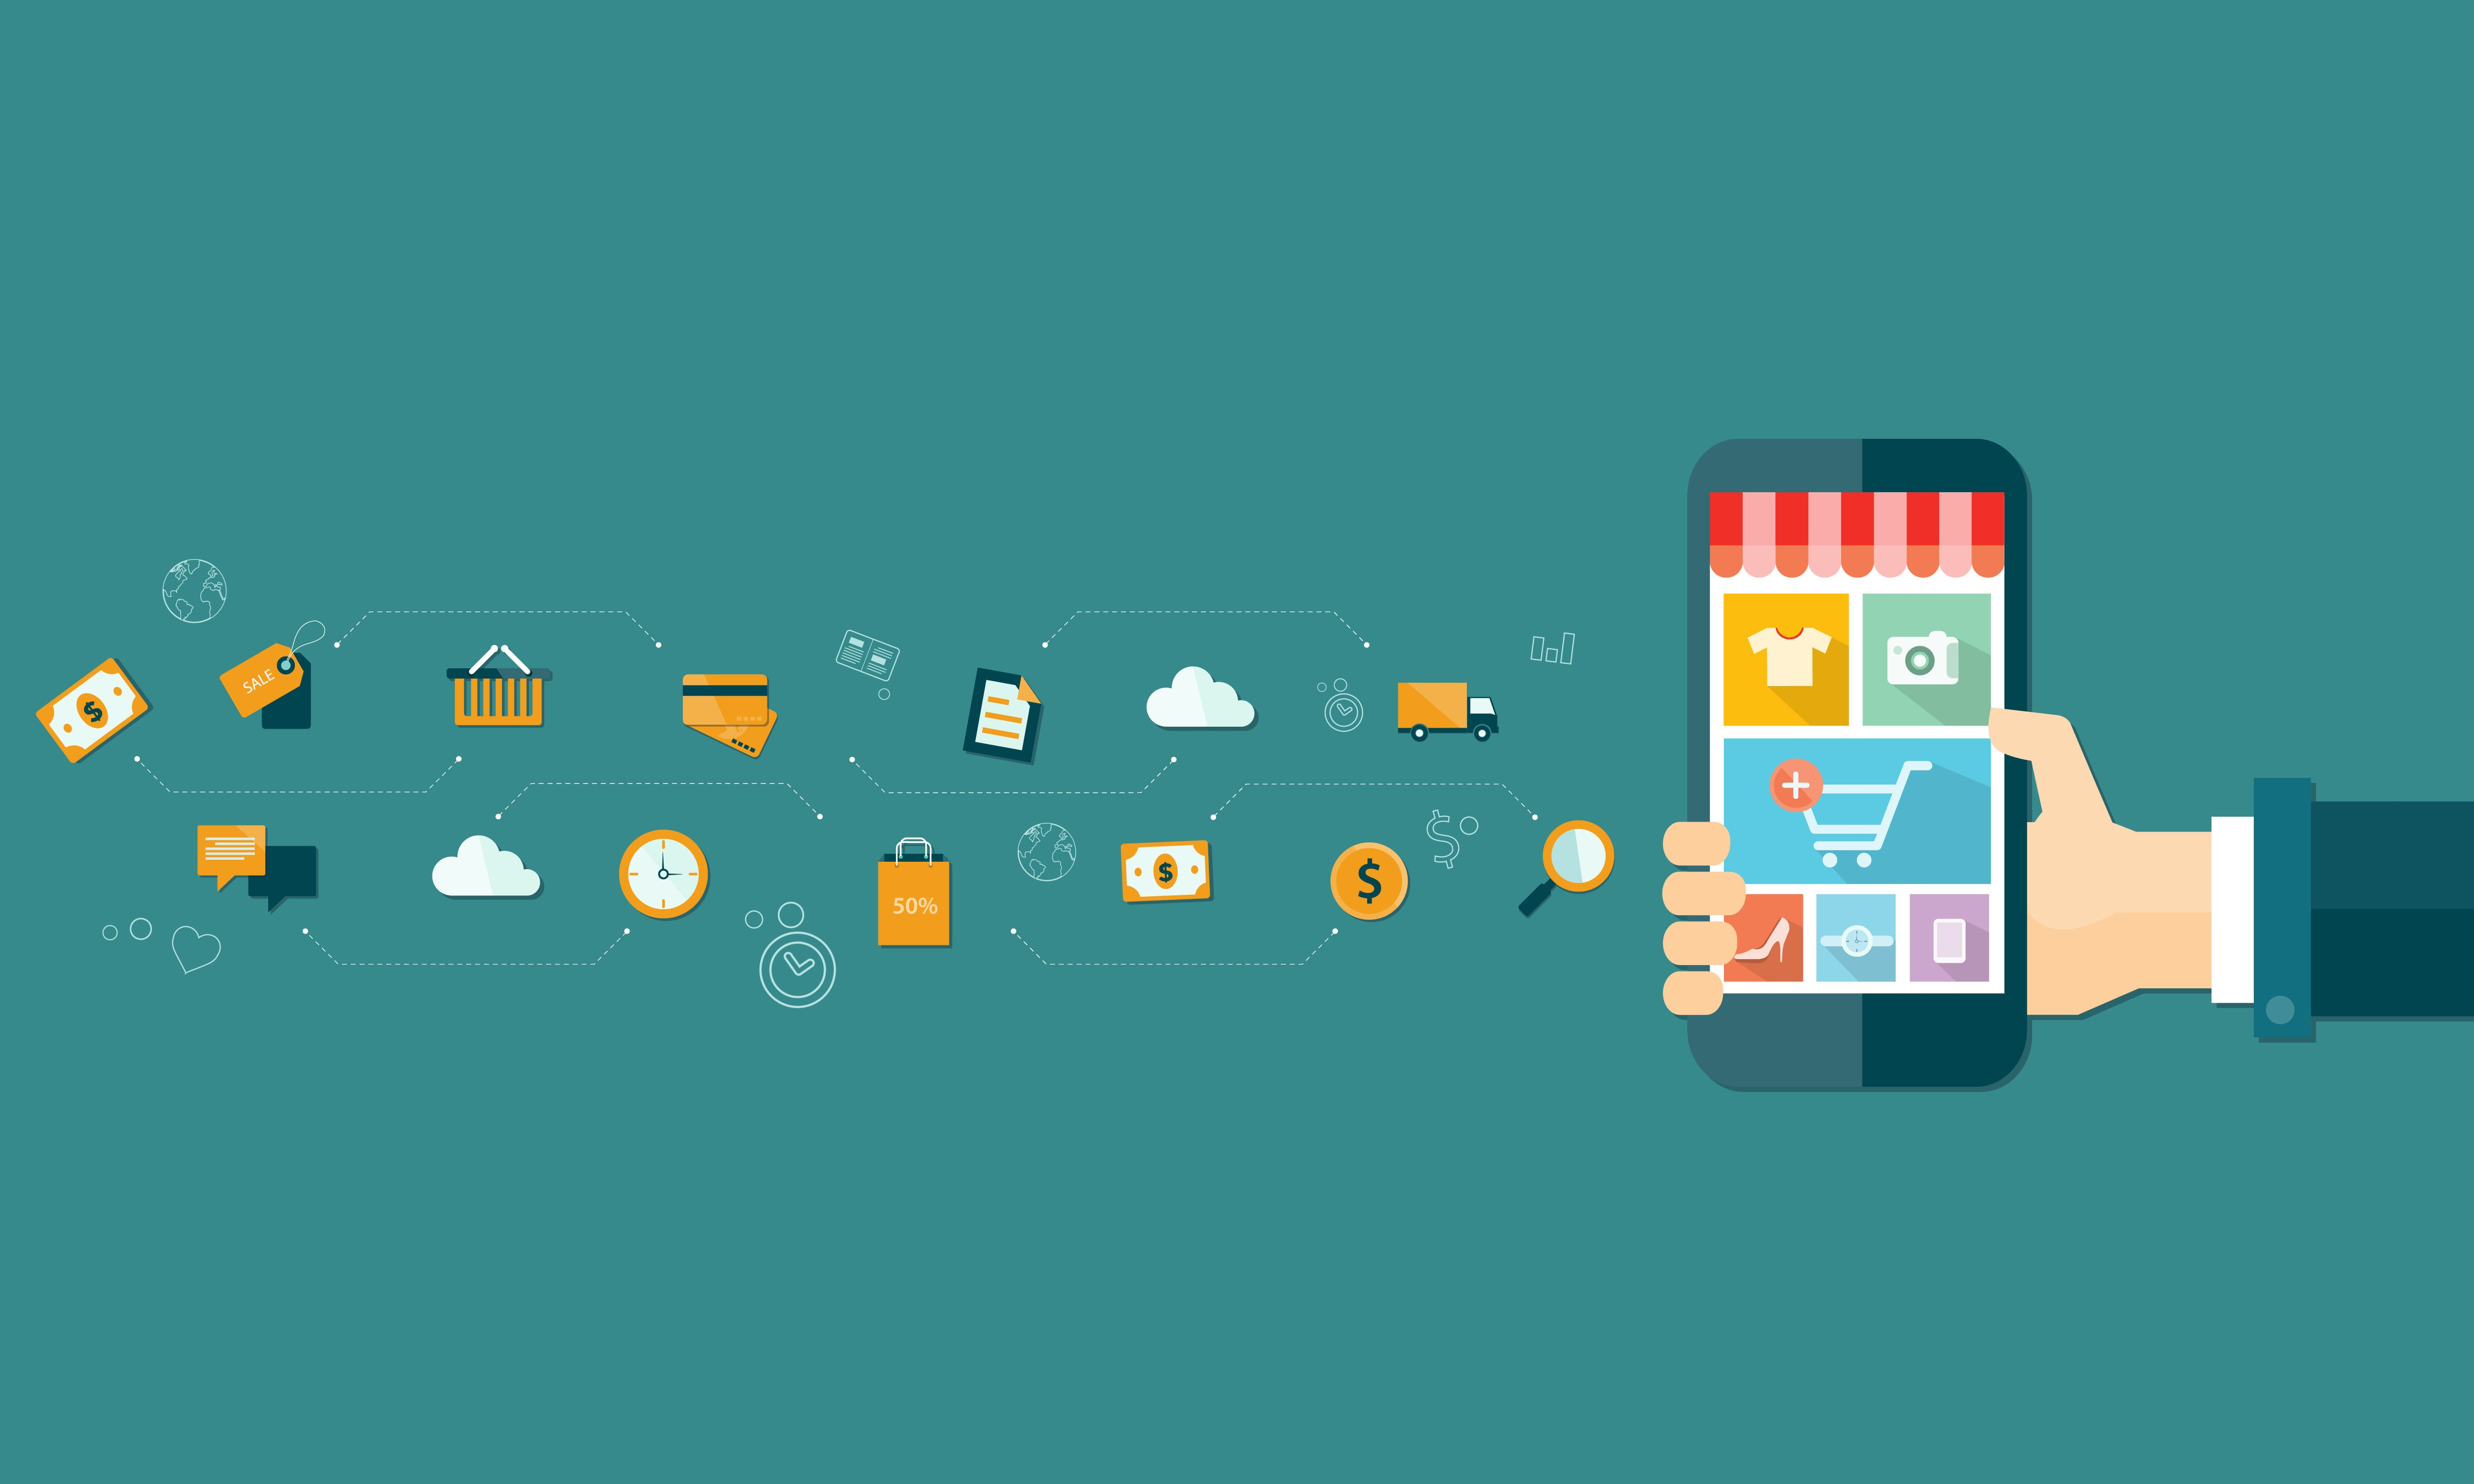 The importance of mobile marketing in ecommerce